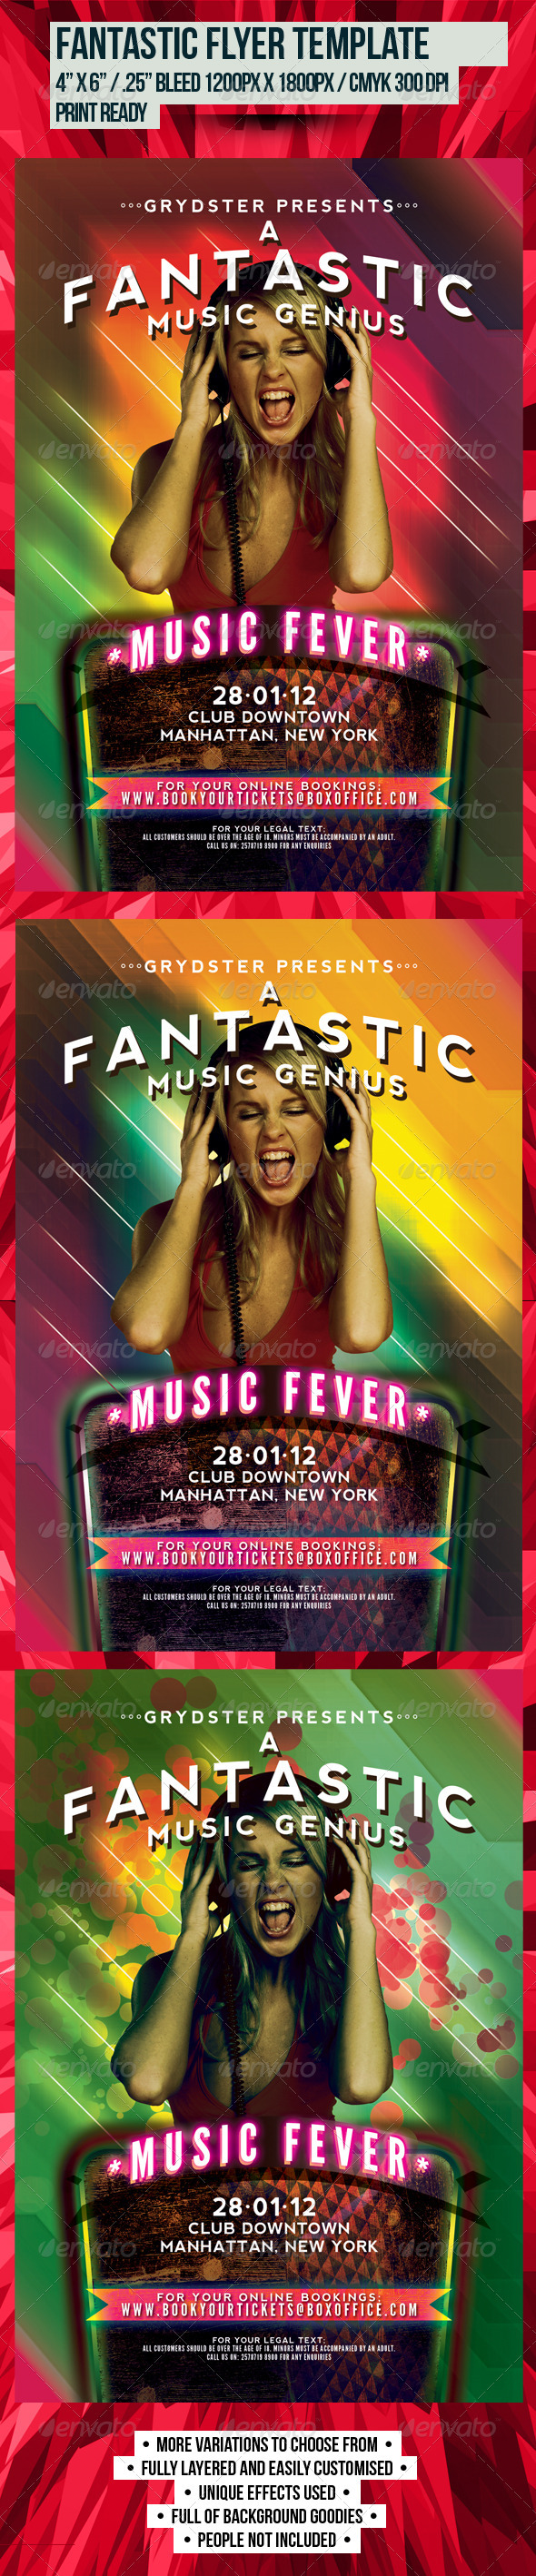 Fantastic Flyer Template